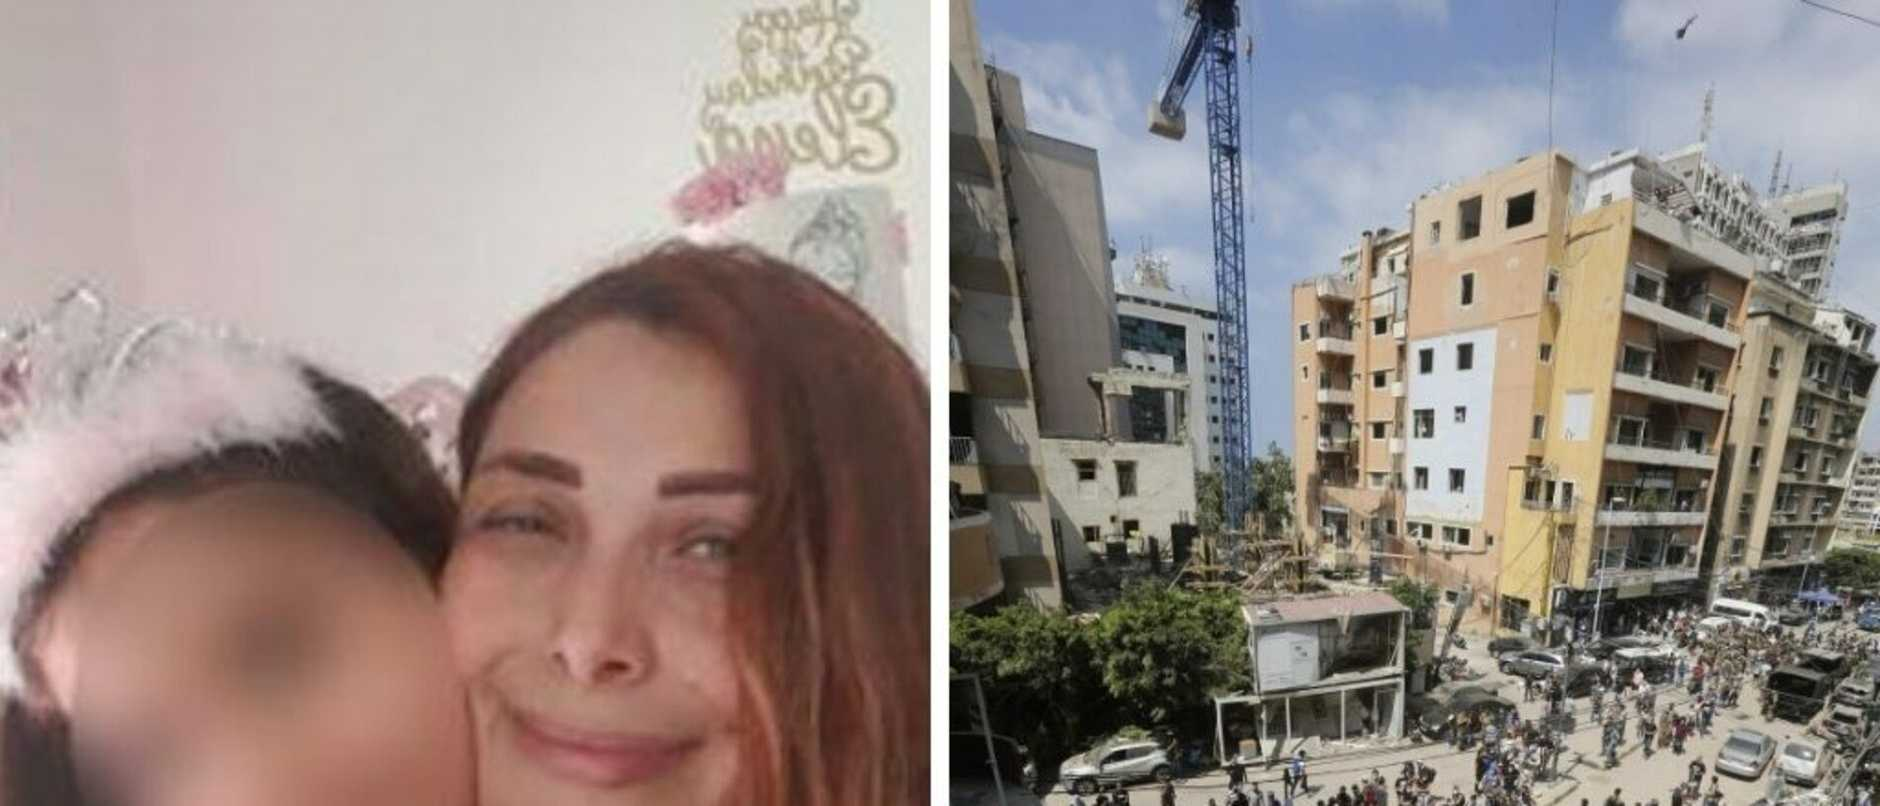 The mother of three Australian children caught in the horror of the Beirut explosion desperately pleading with the government for assistance.